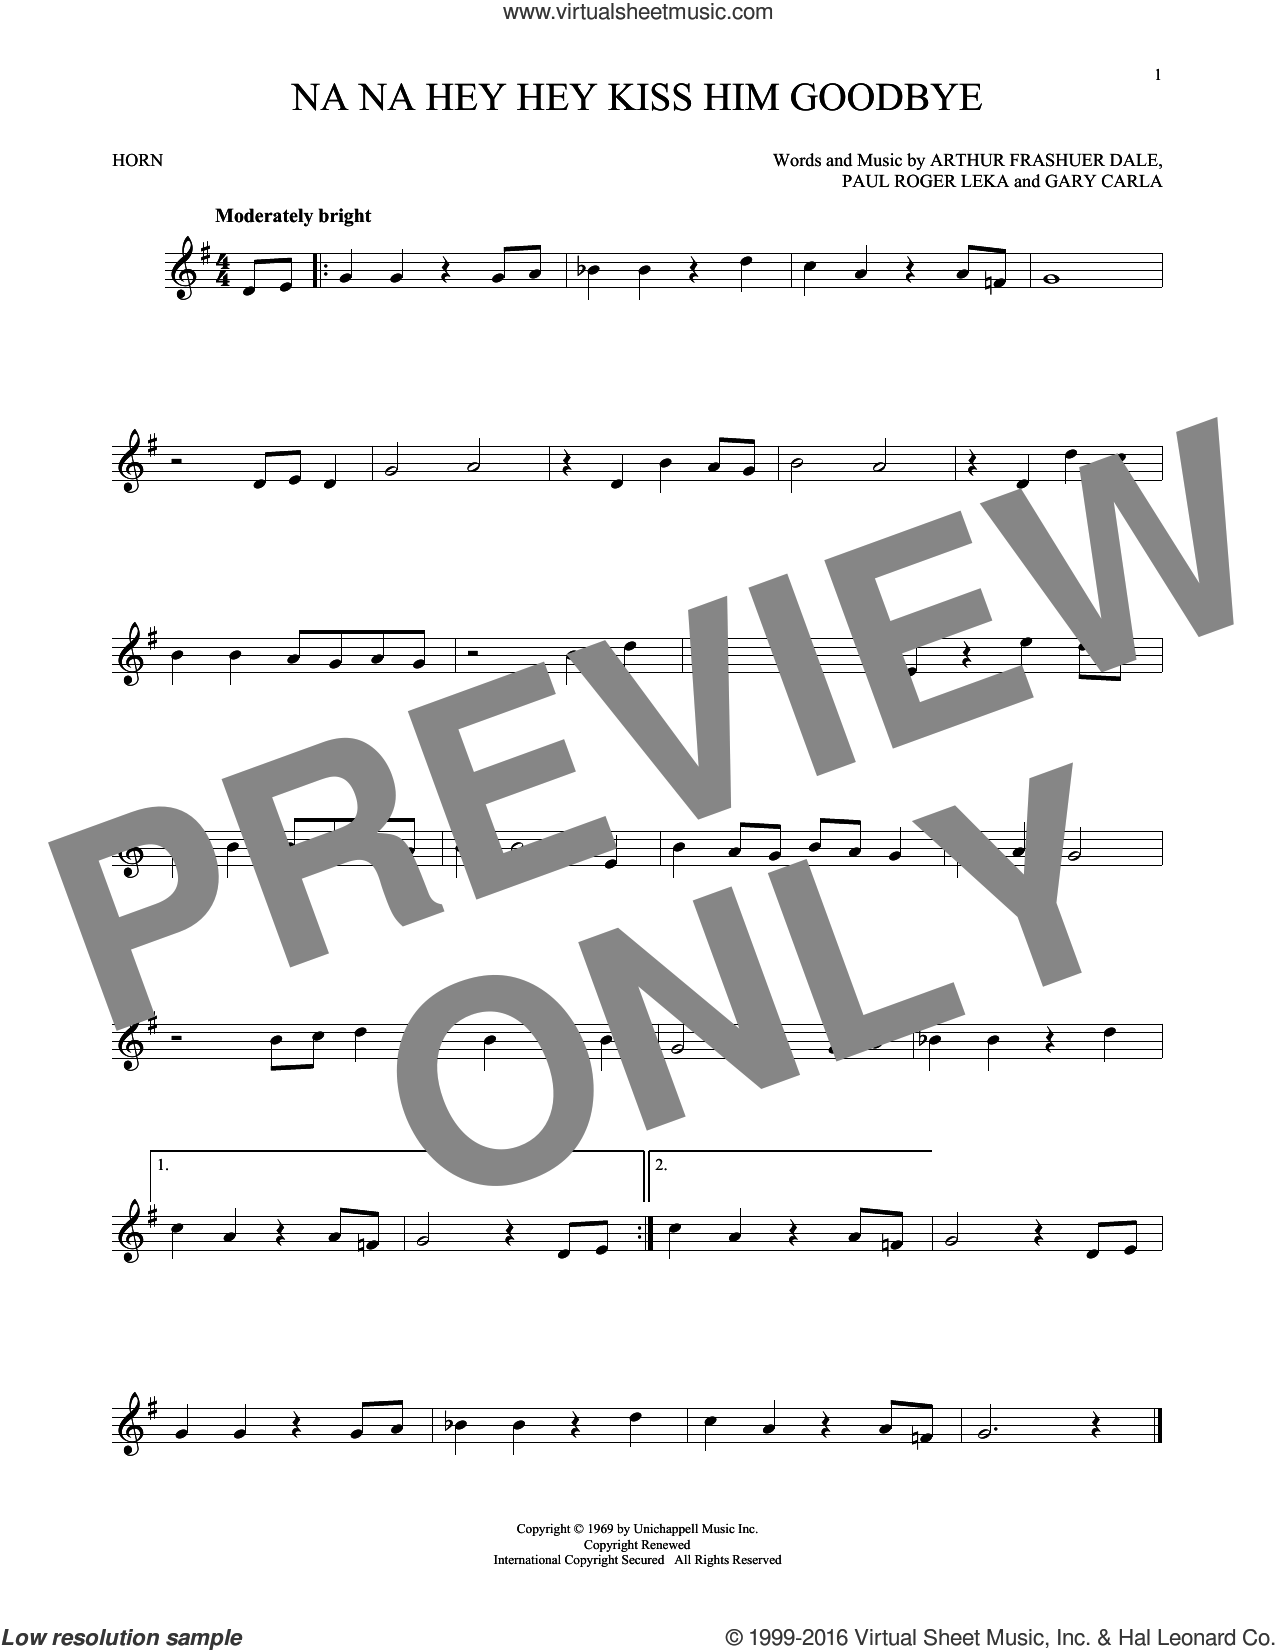 Na Na Hey Hey Kiss Him Goodbye sheet music for horn solo by Steam, Dale Frashuer, Gary De Carlo and Paul Leka. Score Image Preview.